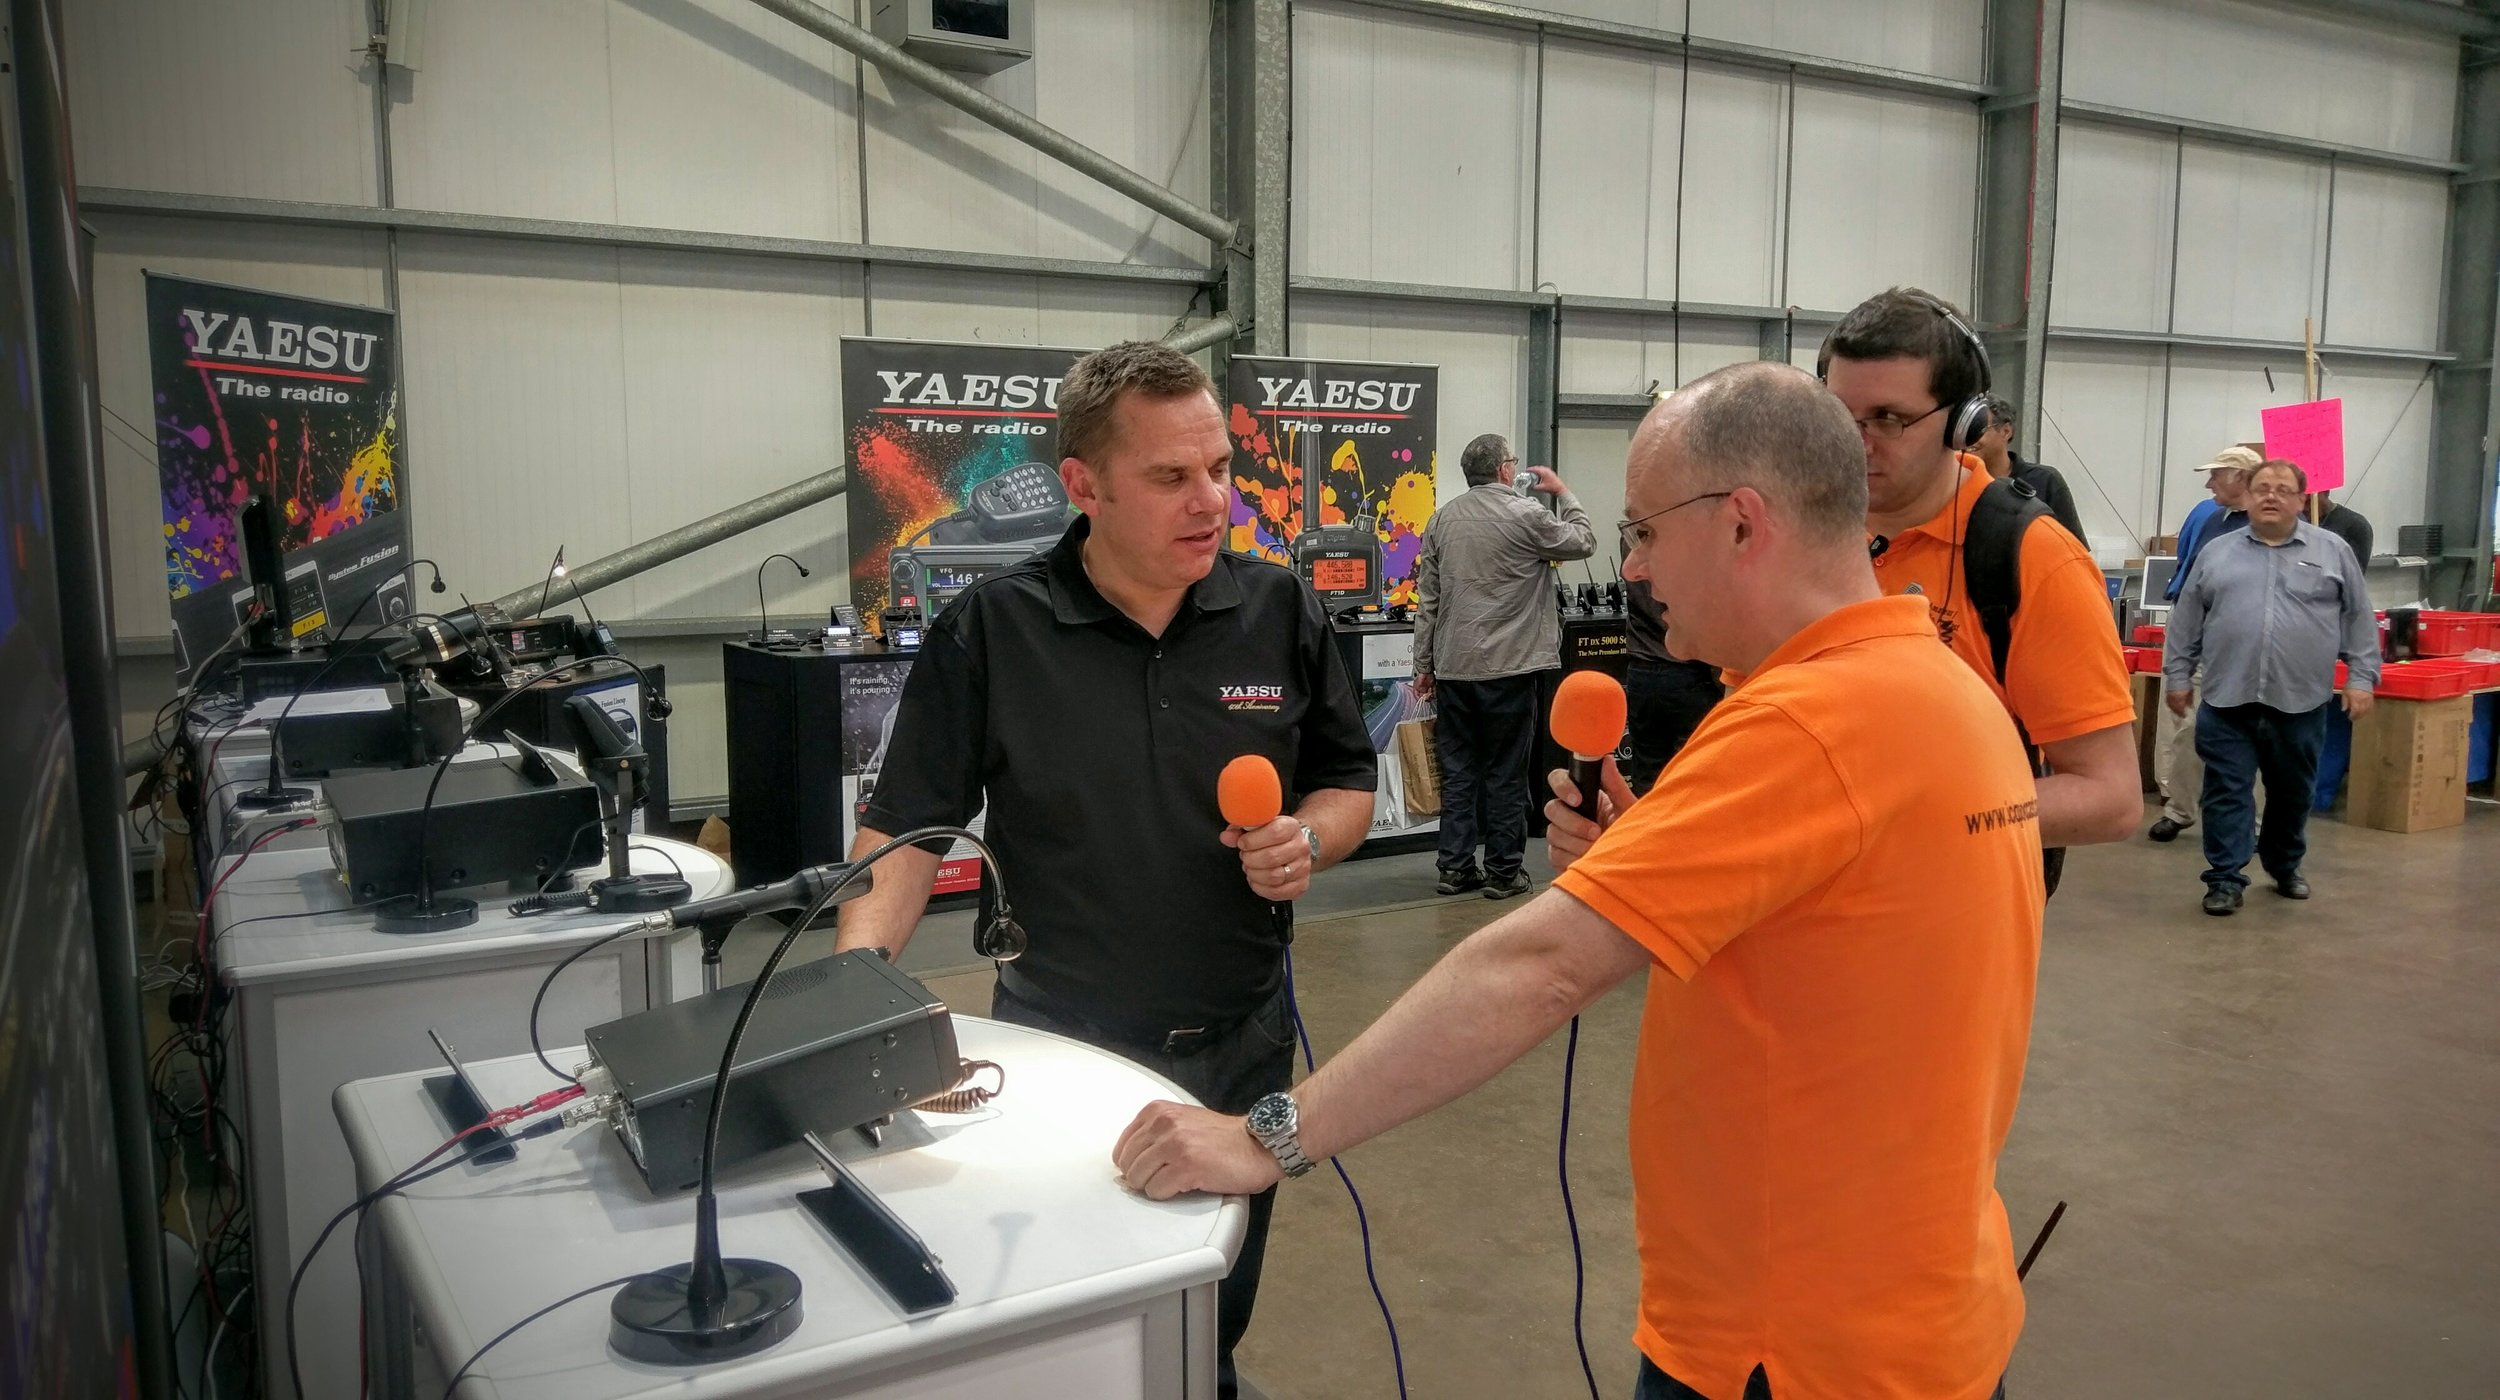 Chris Howard (M0TCH) interviews Dean Croome of Yaesu